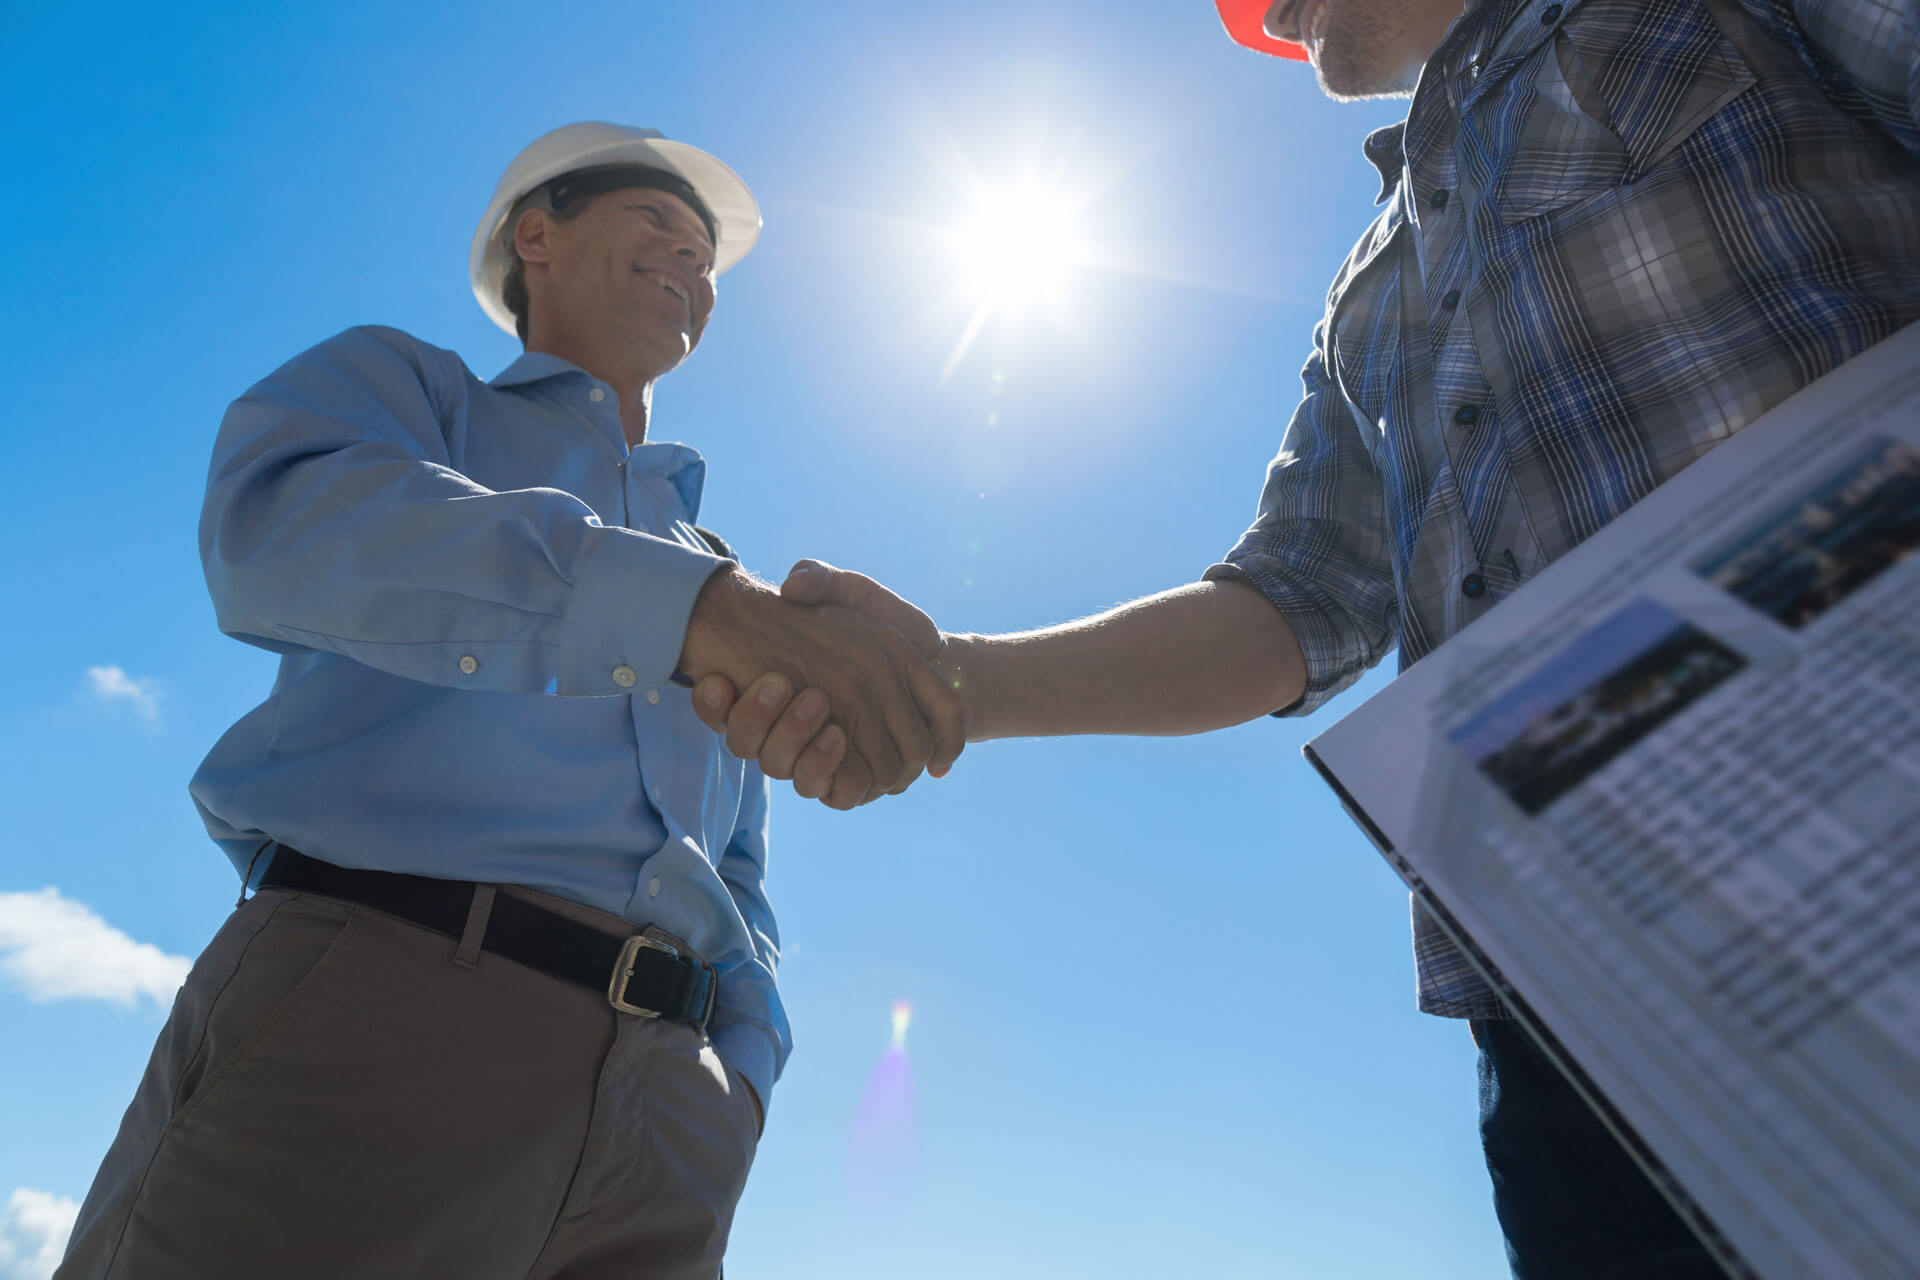 men shaking hands on construction site